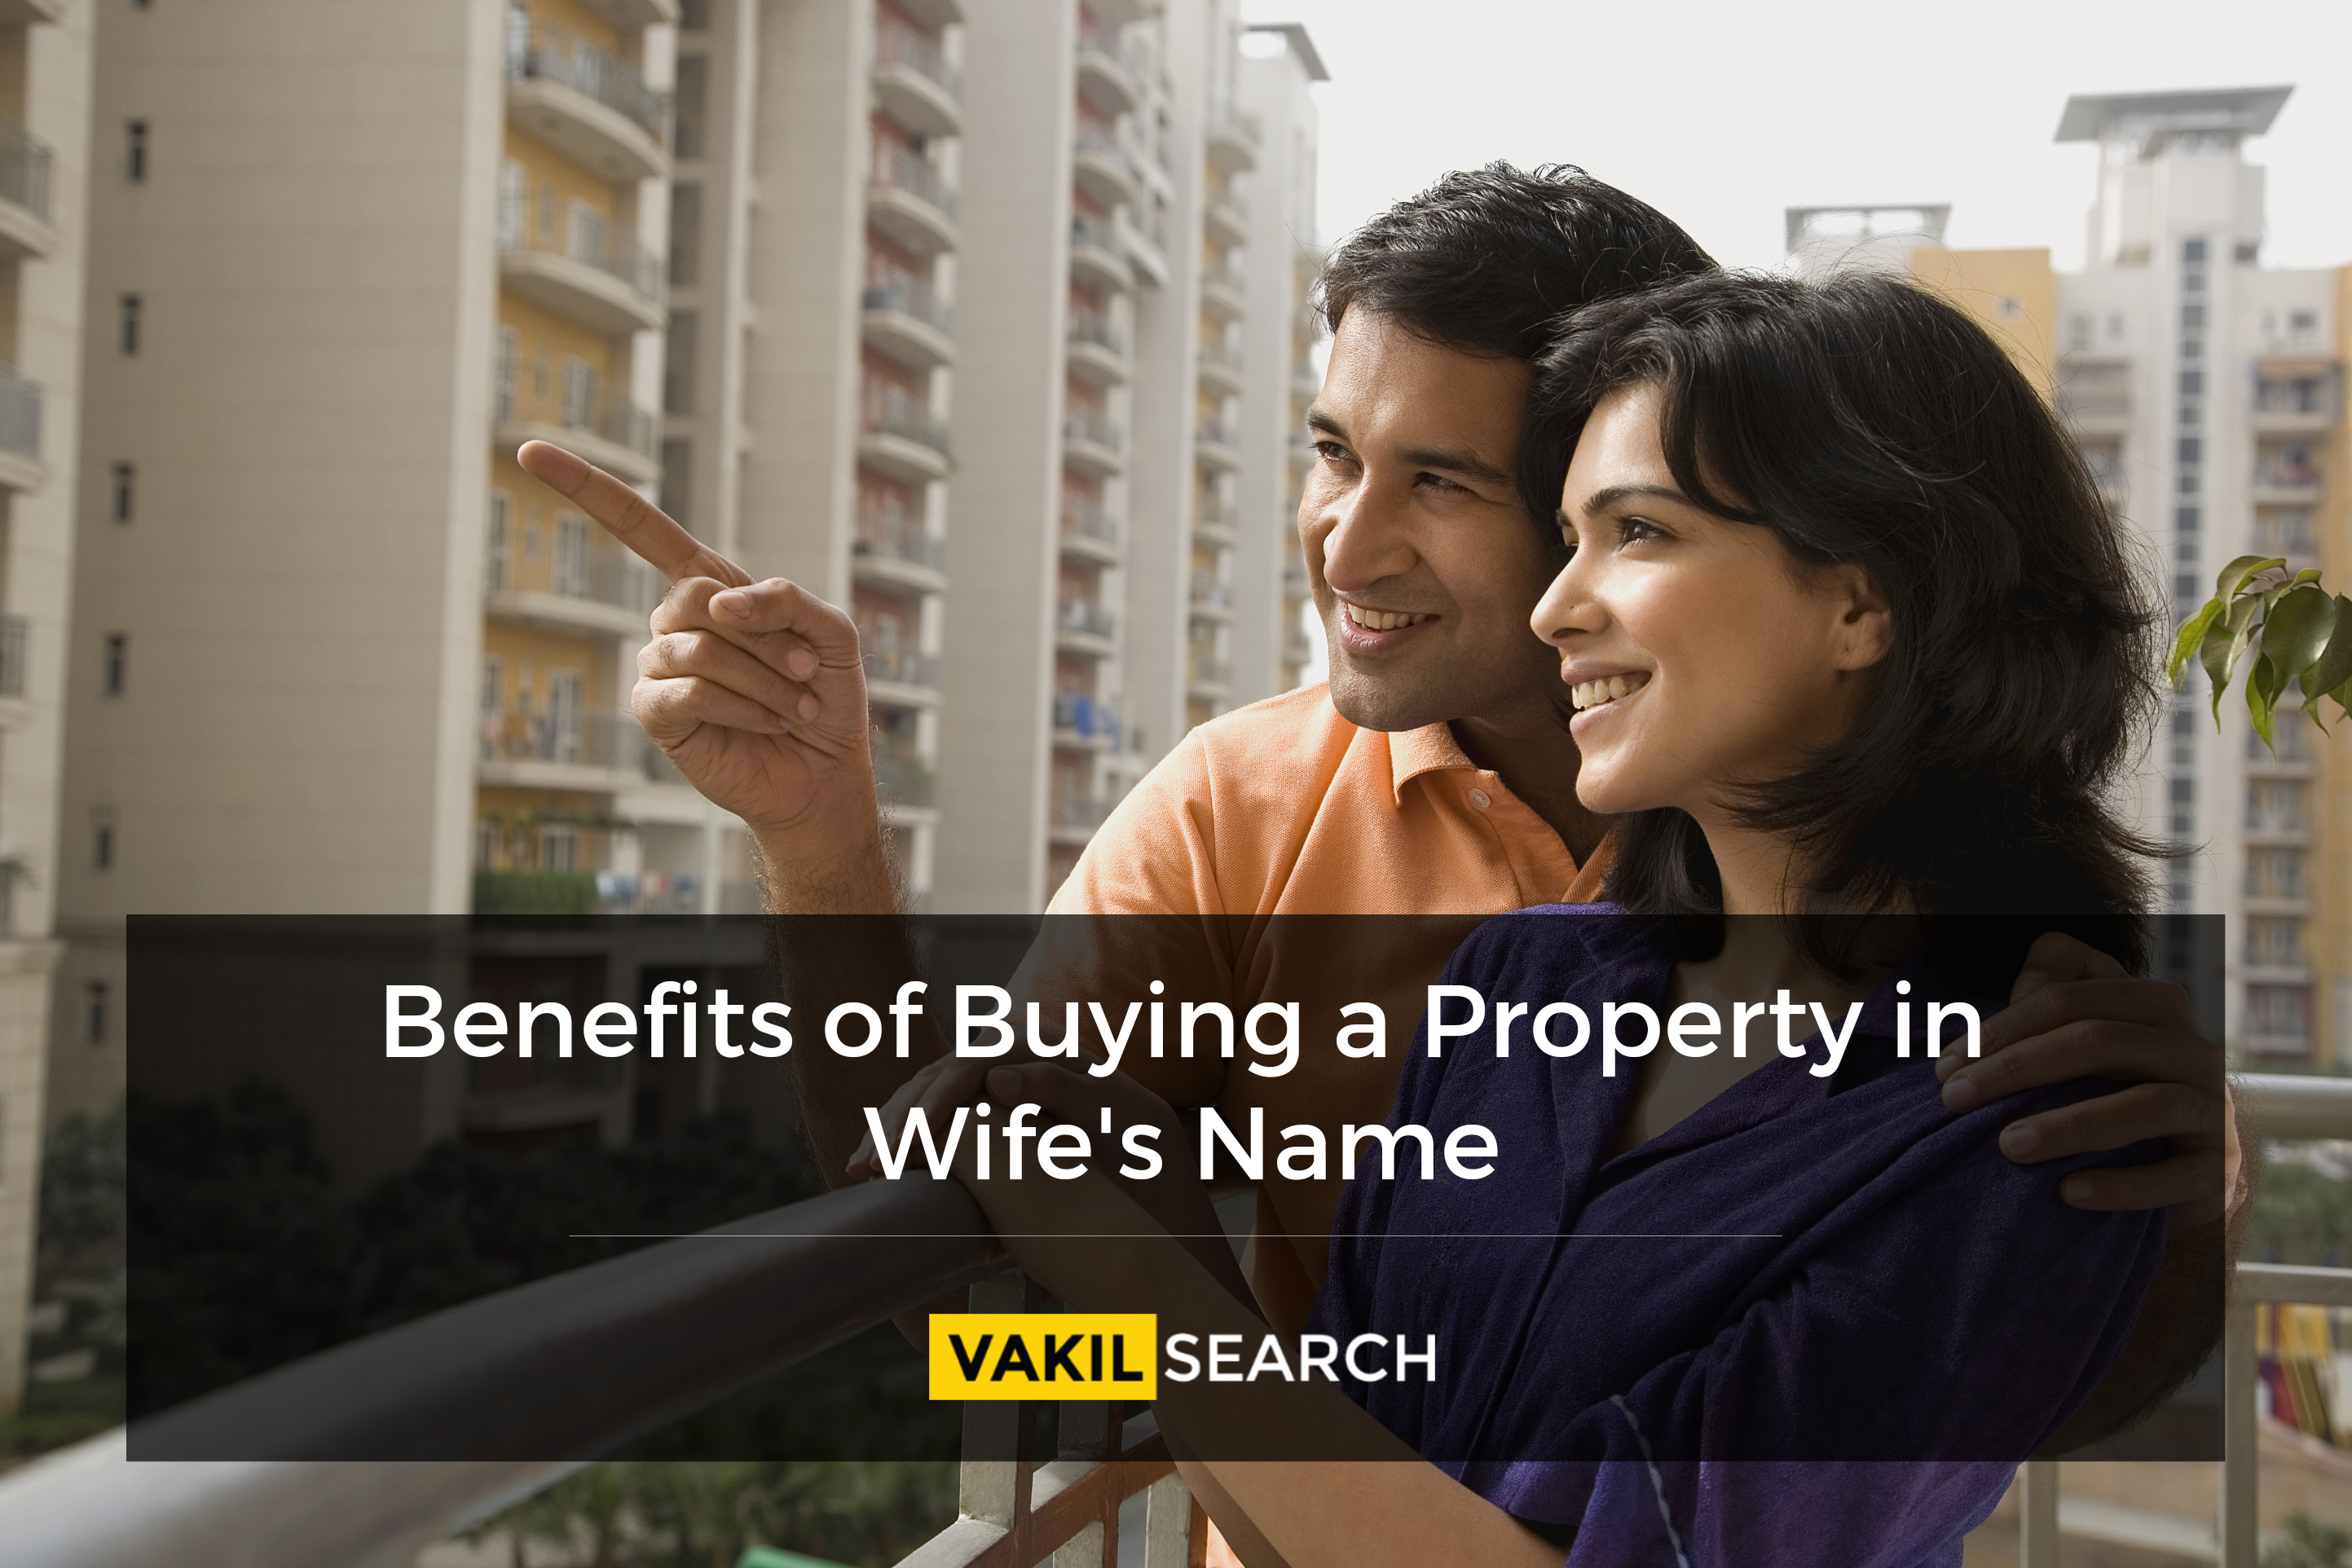 Benefits of Buying a Property in Wife's Name